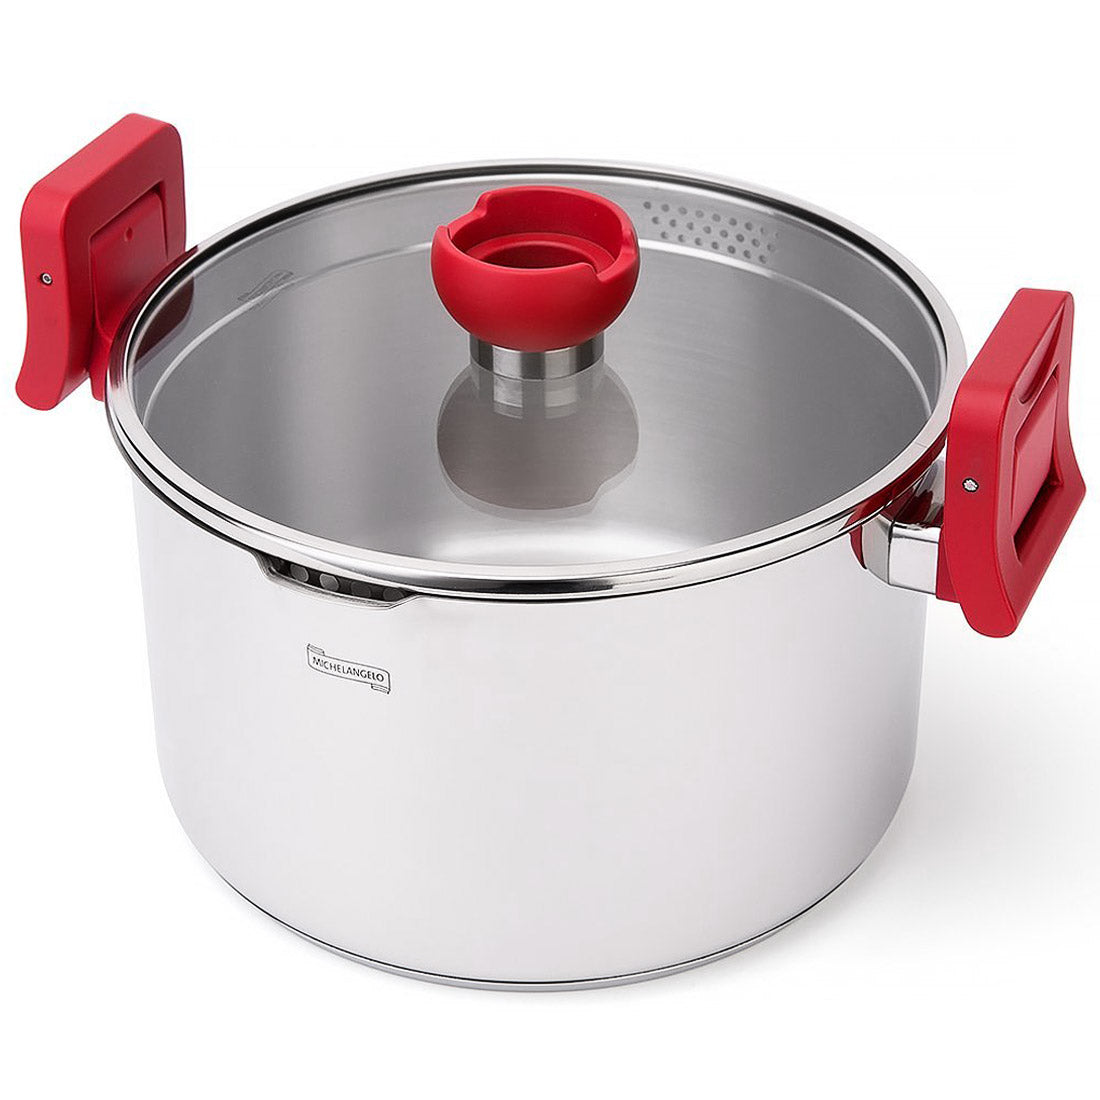 Michelangelo 5 Quart Pasta Pot Induction Ready Stainless Steel